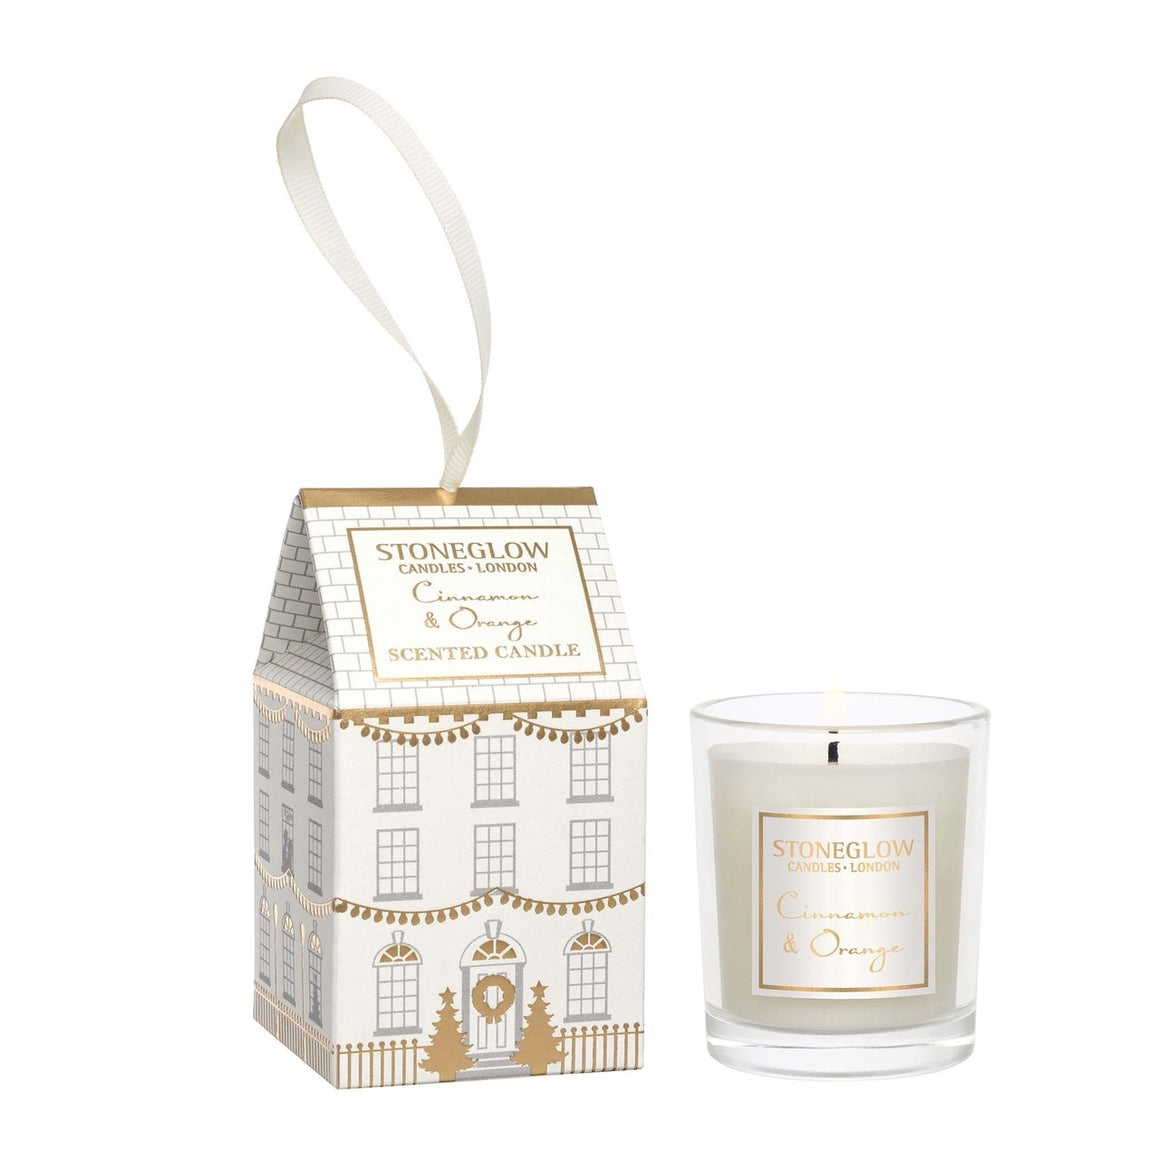 Cinnamon & Orange Votive House Candle